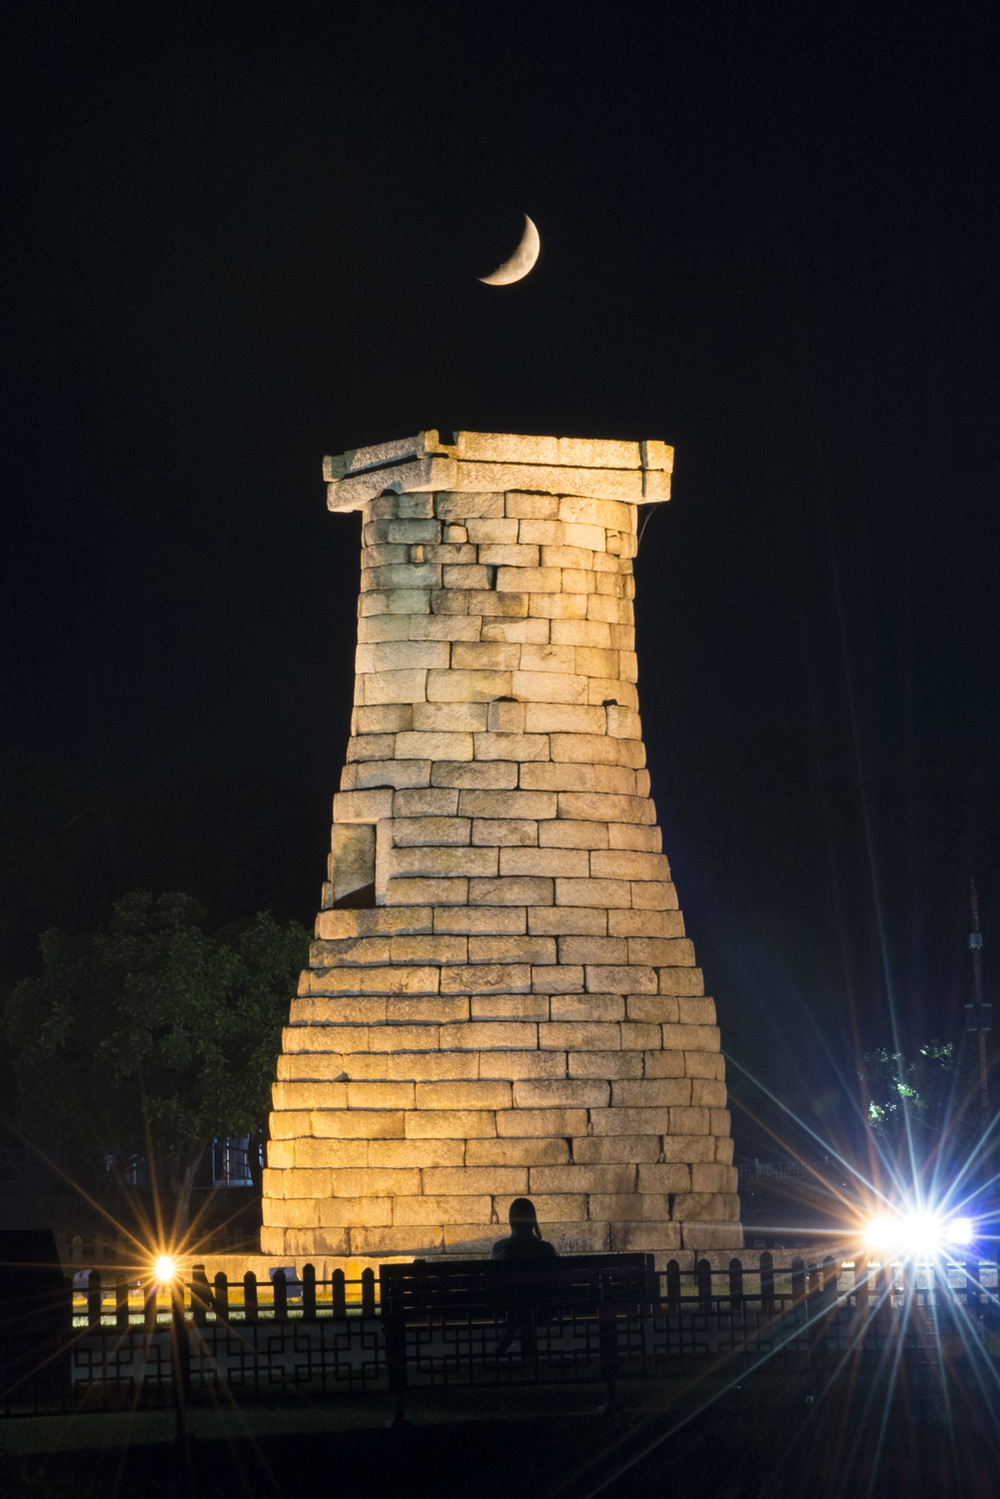 Cheomseongdae Observatory - As I watched the moon set over this ancient structure that was built for studying the cosmos, I was overcome with a sense of enchantment and mystery. It was magical.